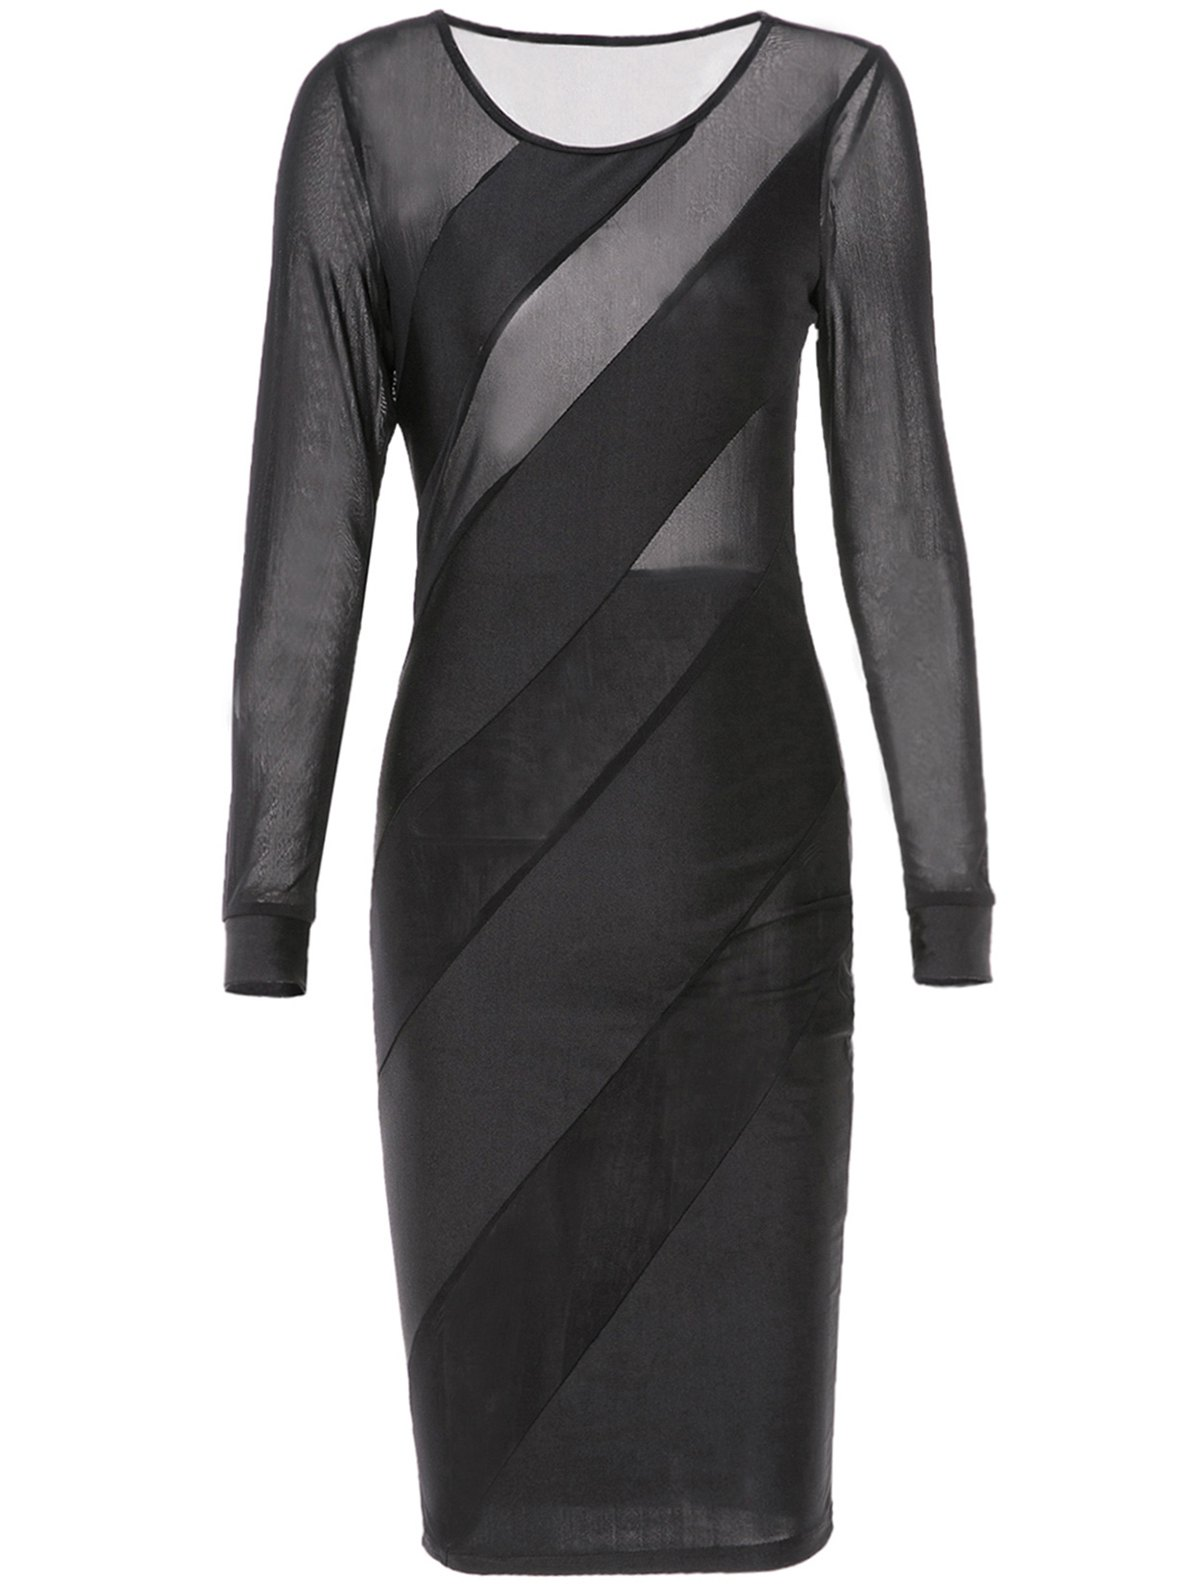 Sexy Jewel Neck See-Through Skew Striped Long Sleeve Bodycon Dress For Women - BLACK L